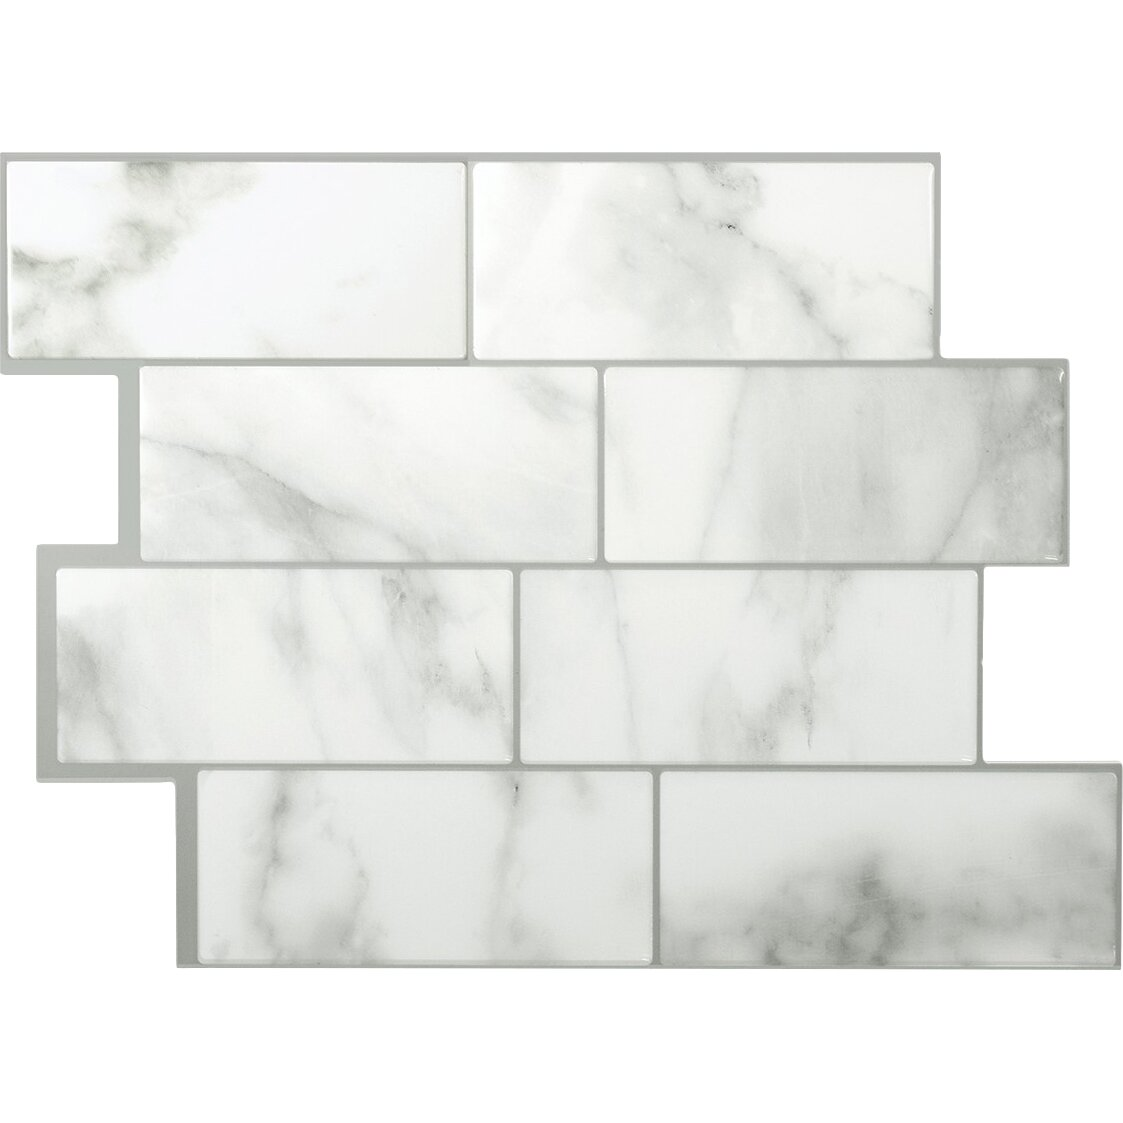 smart tiles mosaik metro carrera x peel stick wall tile in white and gray. Black Bedroom Furniture Sets. Home Design Ideas